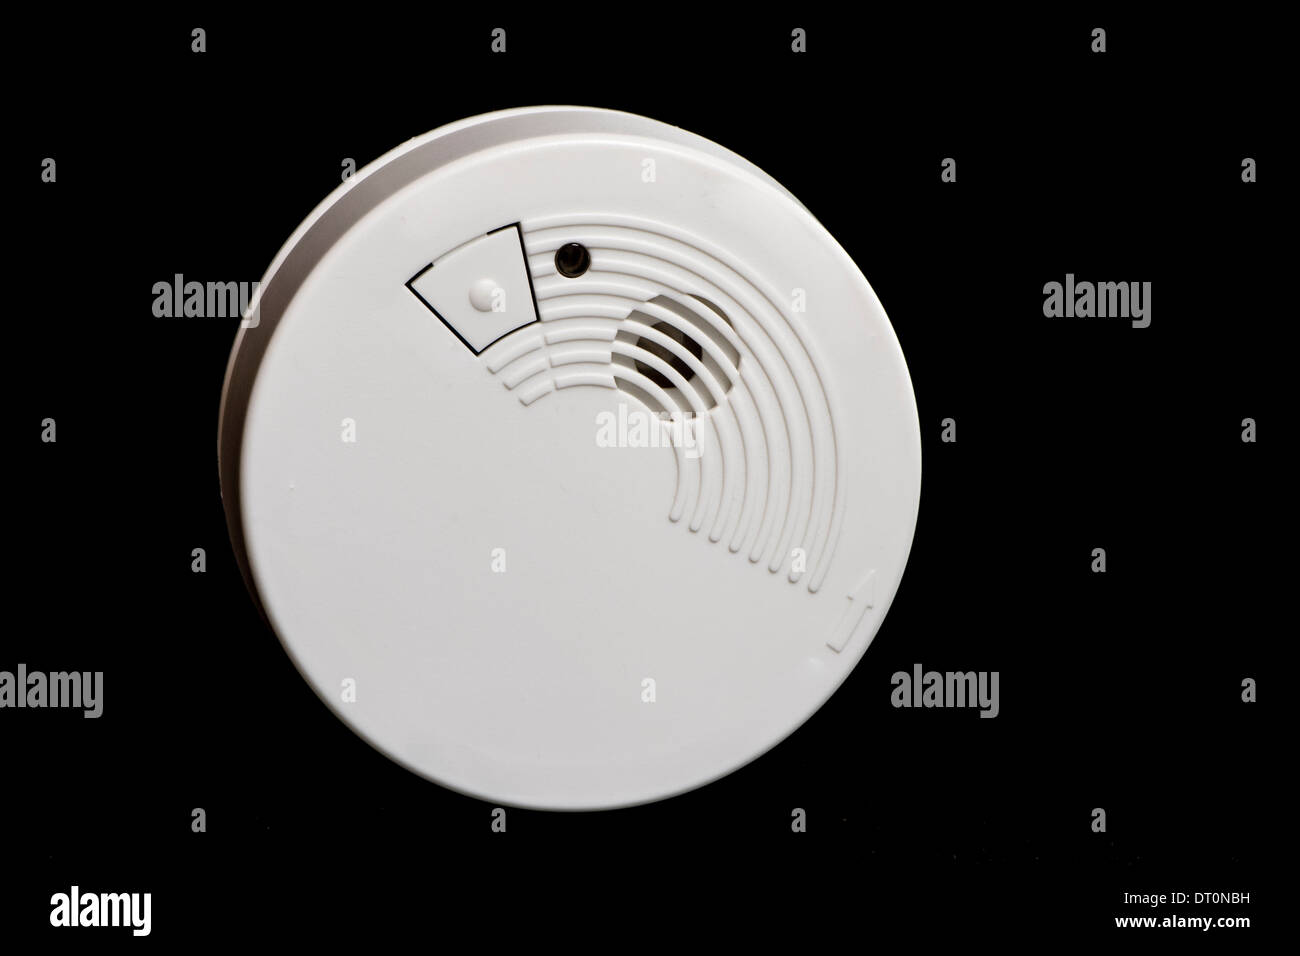 Fire safety with a smoke detector - Stock Image